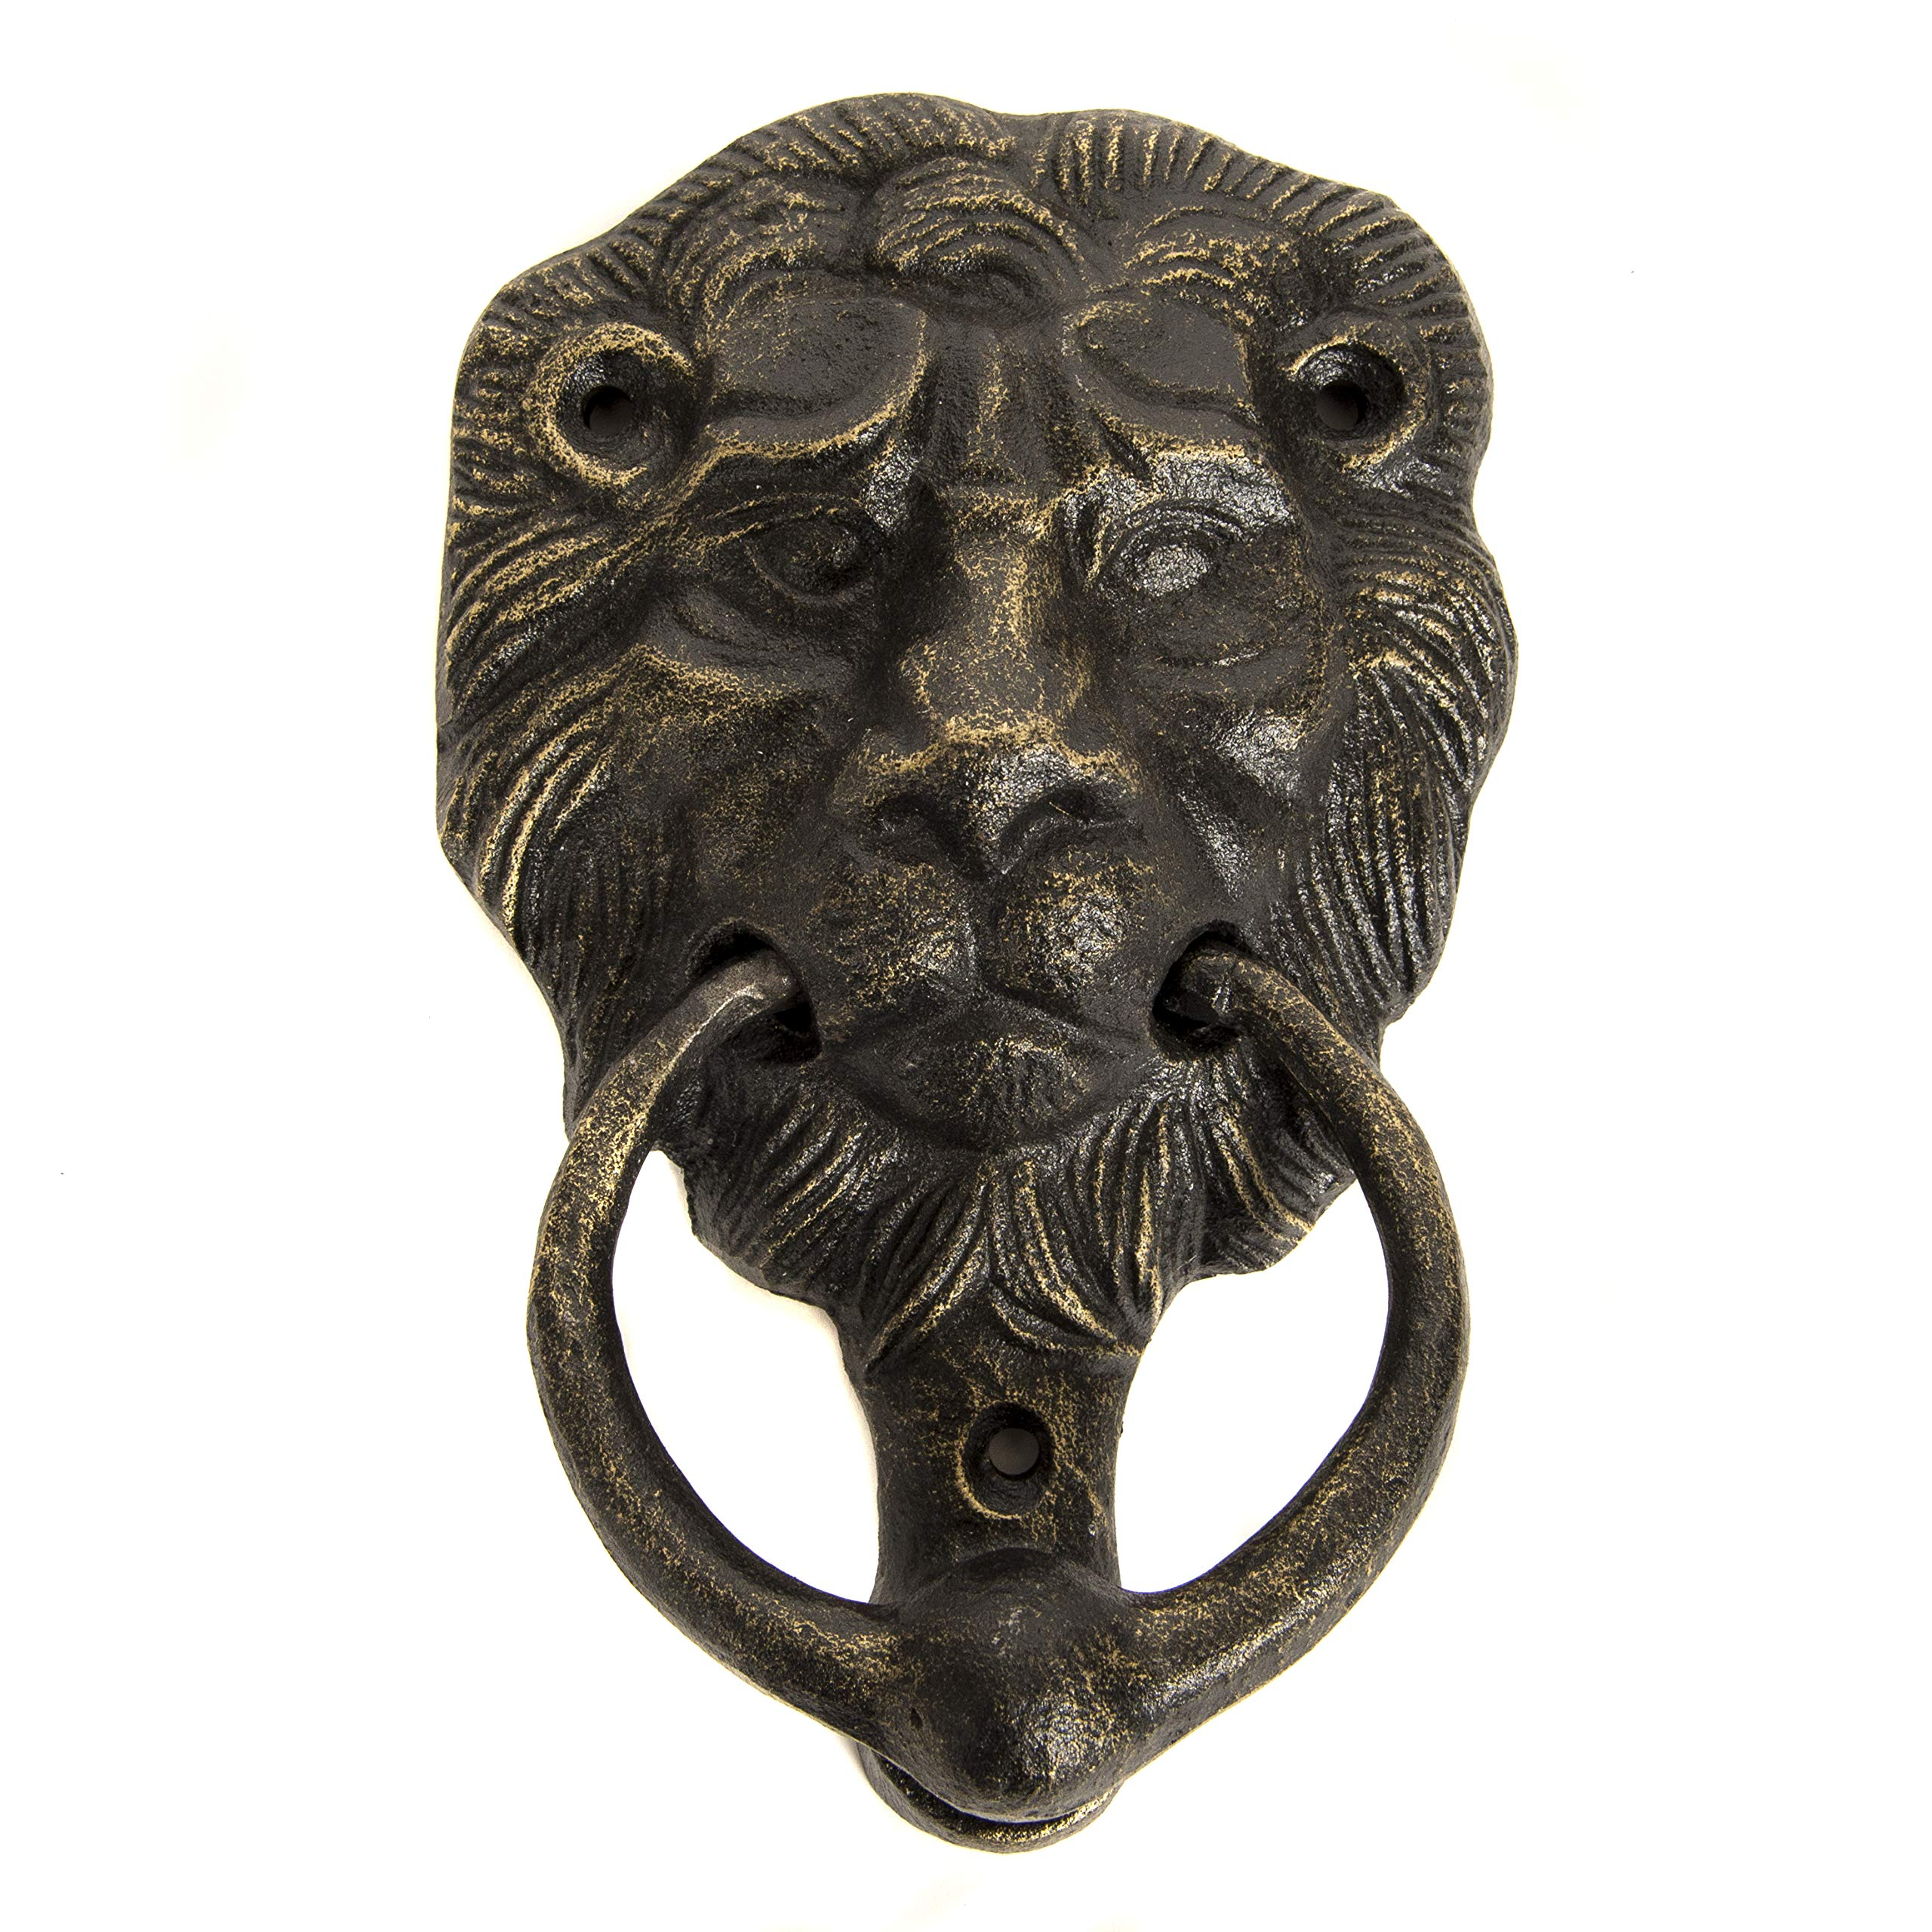 Cast Iron Lions Head Door Knocker Bronze with Screws 6''W X 4''W 4733